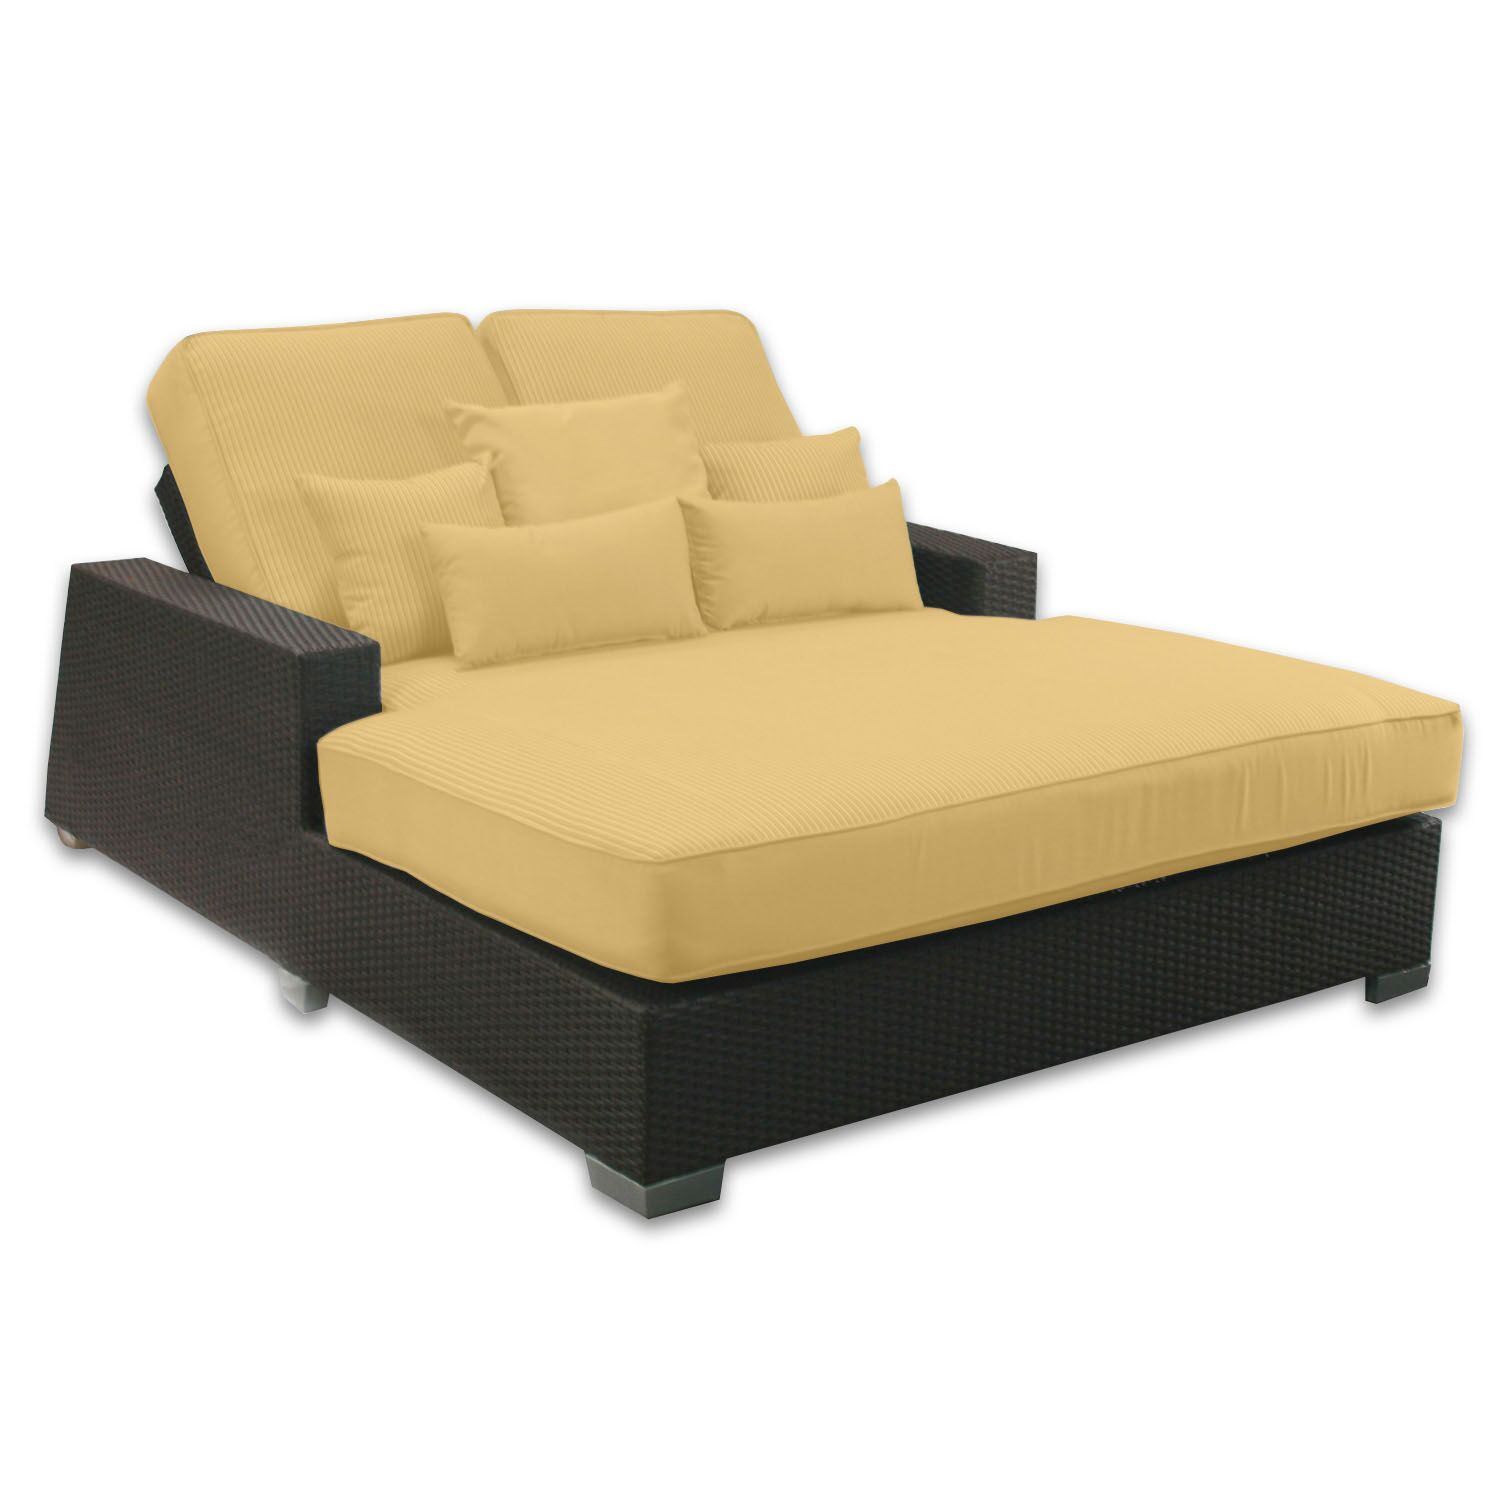 Signature Double Chaise Lounge with Cushion Fabric Color: Daffodil